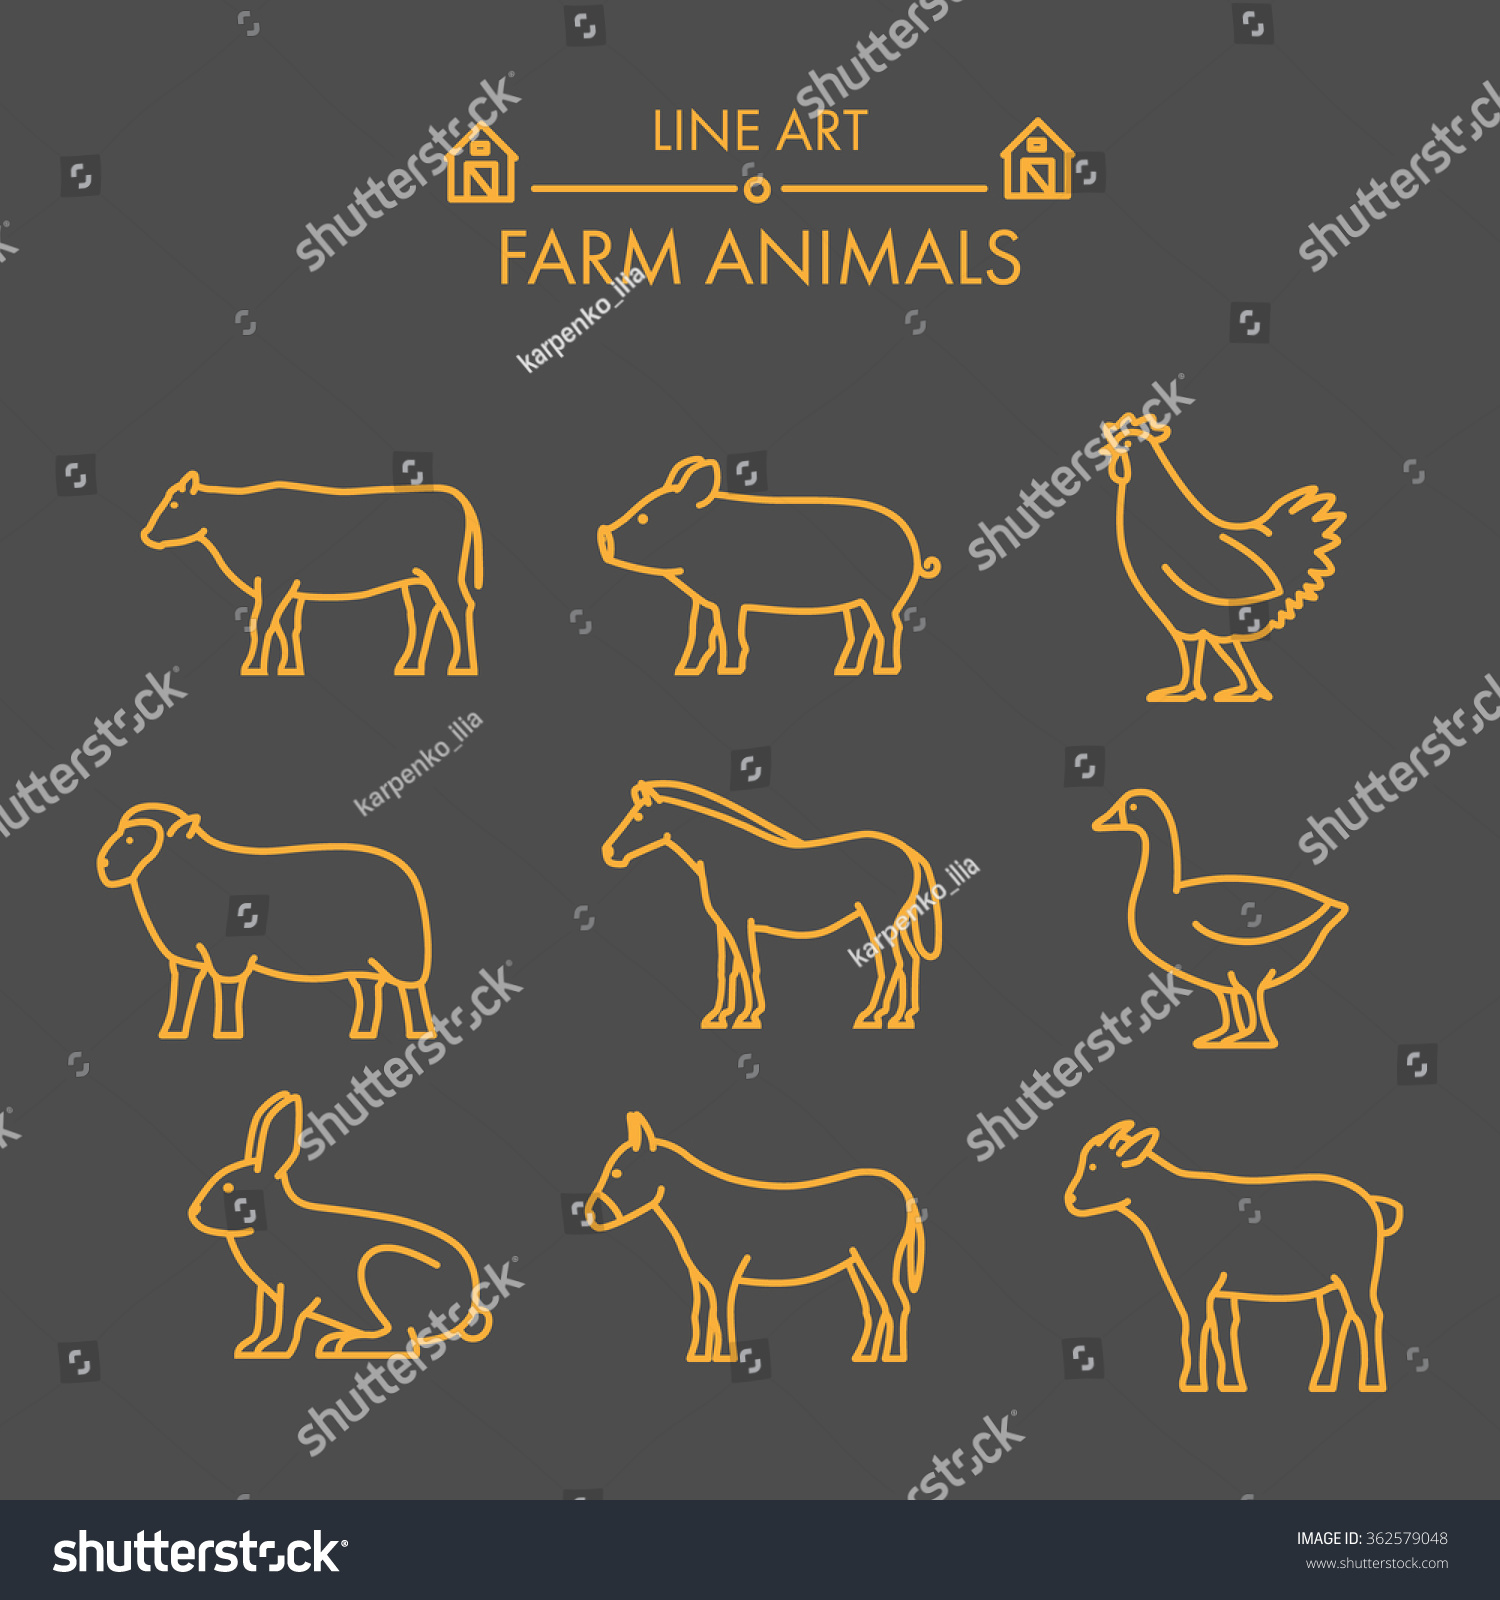 Vector line farm animals icon set Linear figure cow pig chicken horse rabbit goat donkey and sheep